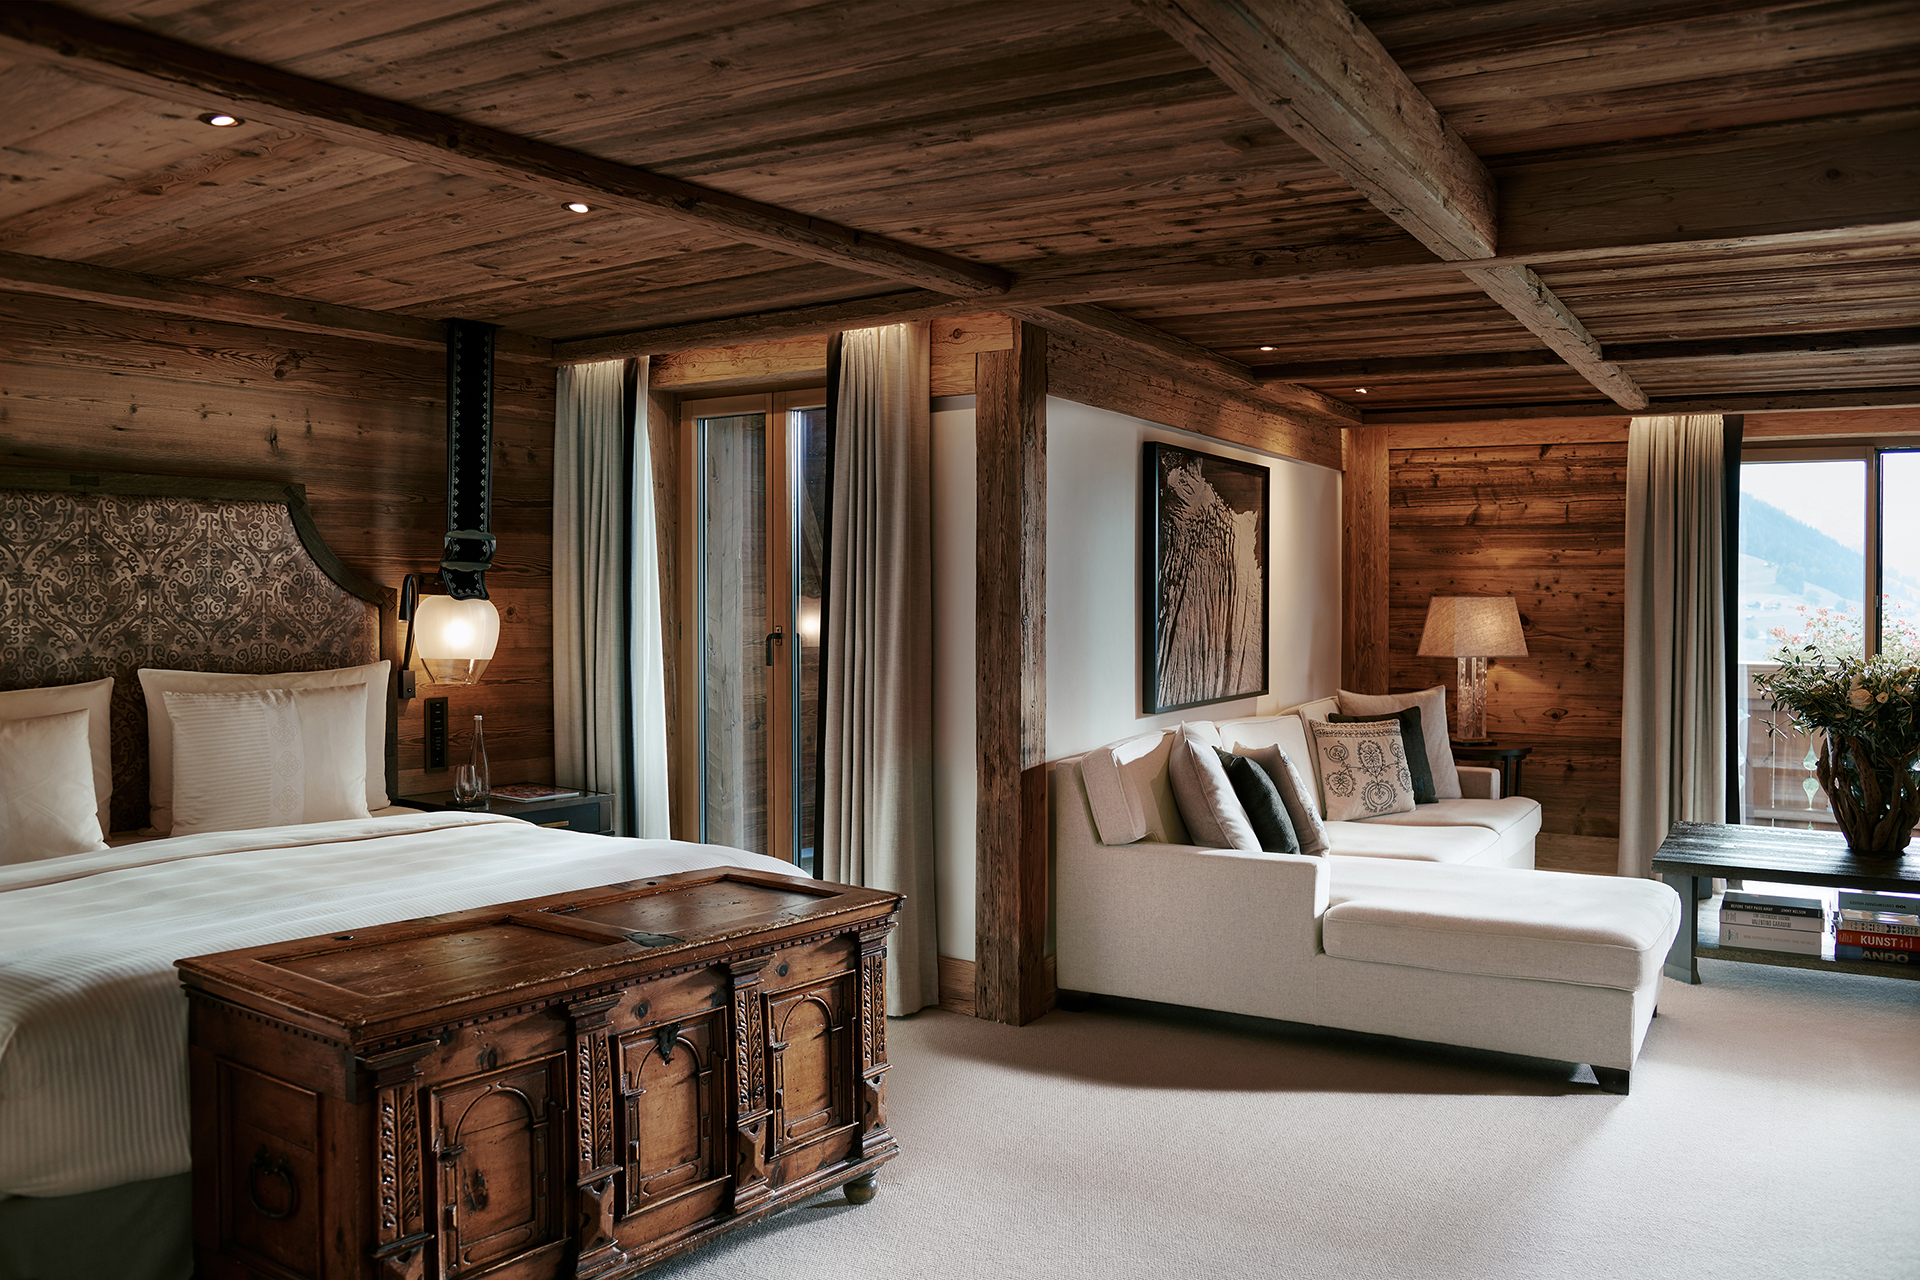 TheAlpinaGstaad_Rooms&Suites_0038_1920.jpg